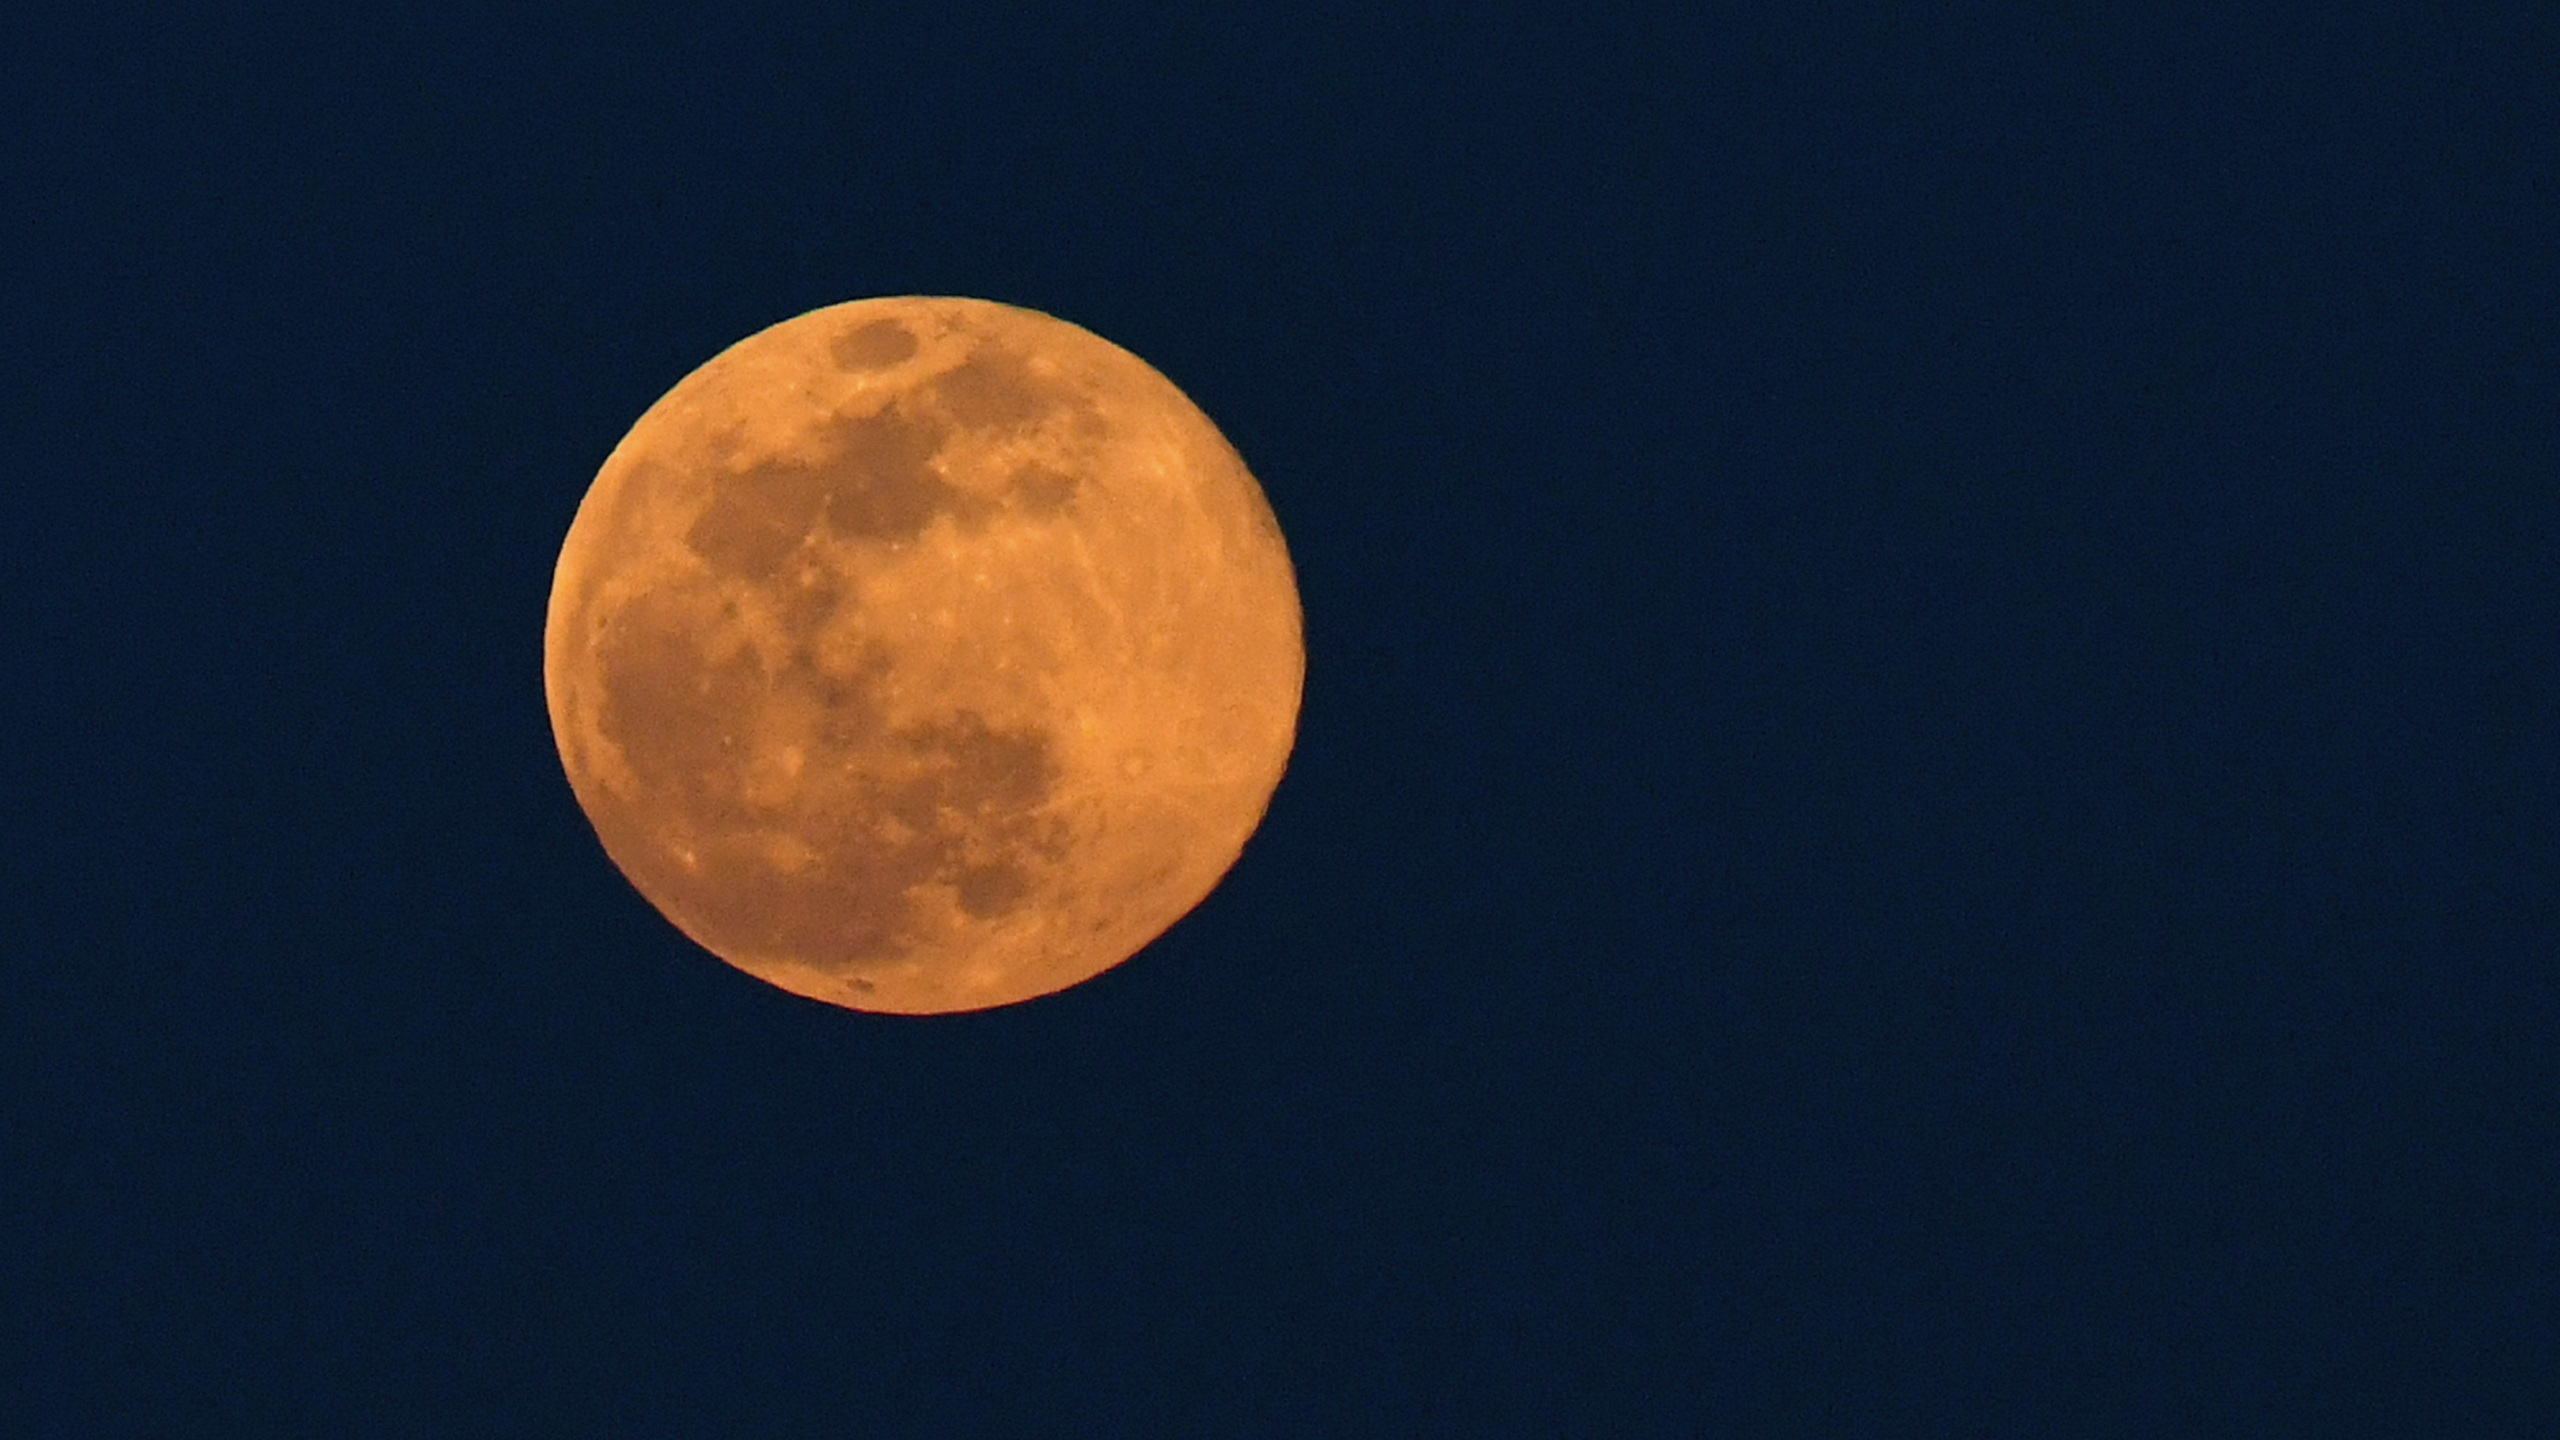 The super pink moon, the biggest supermoon of the year, is shown shortly after rising on April 7, 2020. in Las Vegas. The pink moon got its name because the April full moon occurs at the same time the pink wildflower Phlox subulata blooms in North America. A supermoon occurs when a full moon coincides with its perigee, which is its closest approach to the Earth. (Ethan Miller/Getty Images)